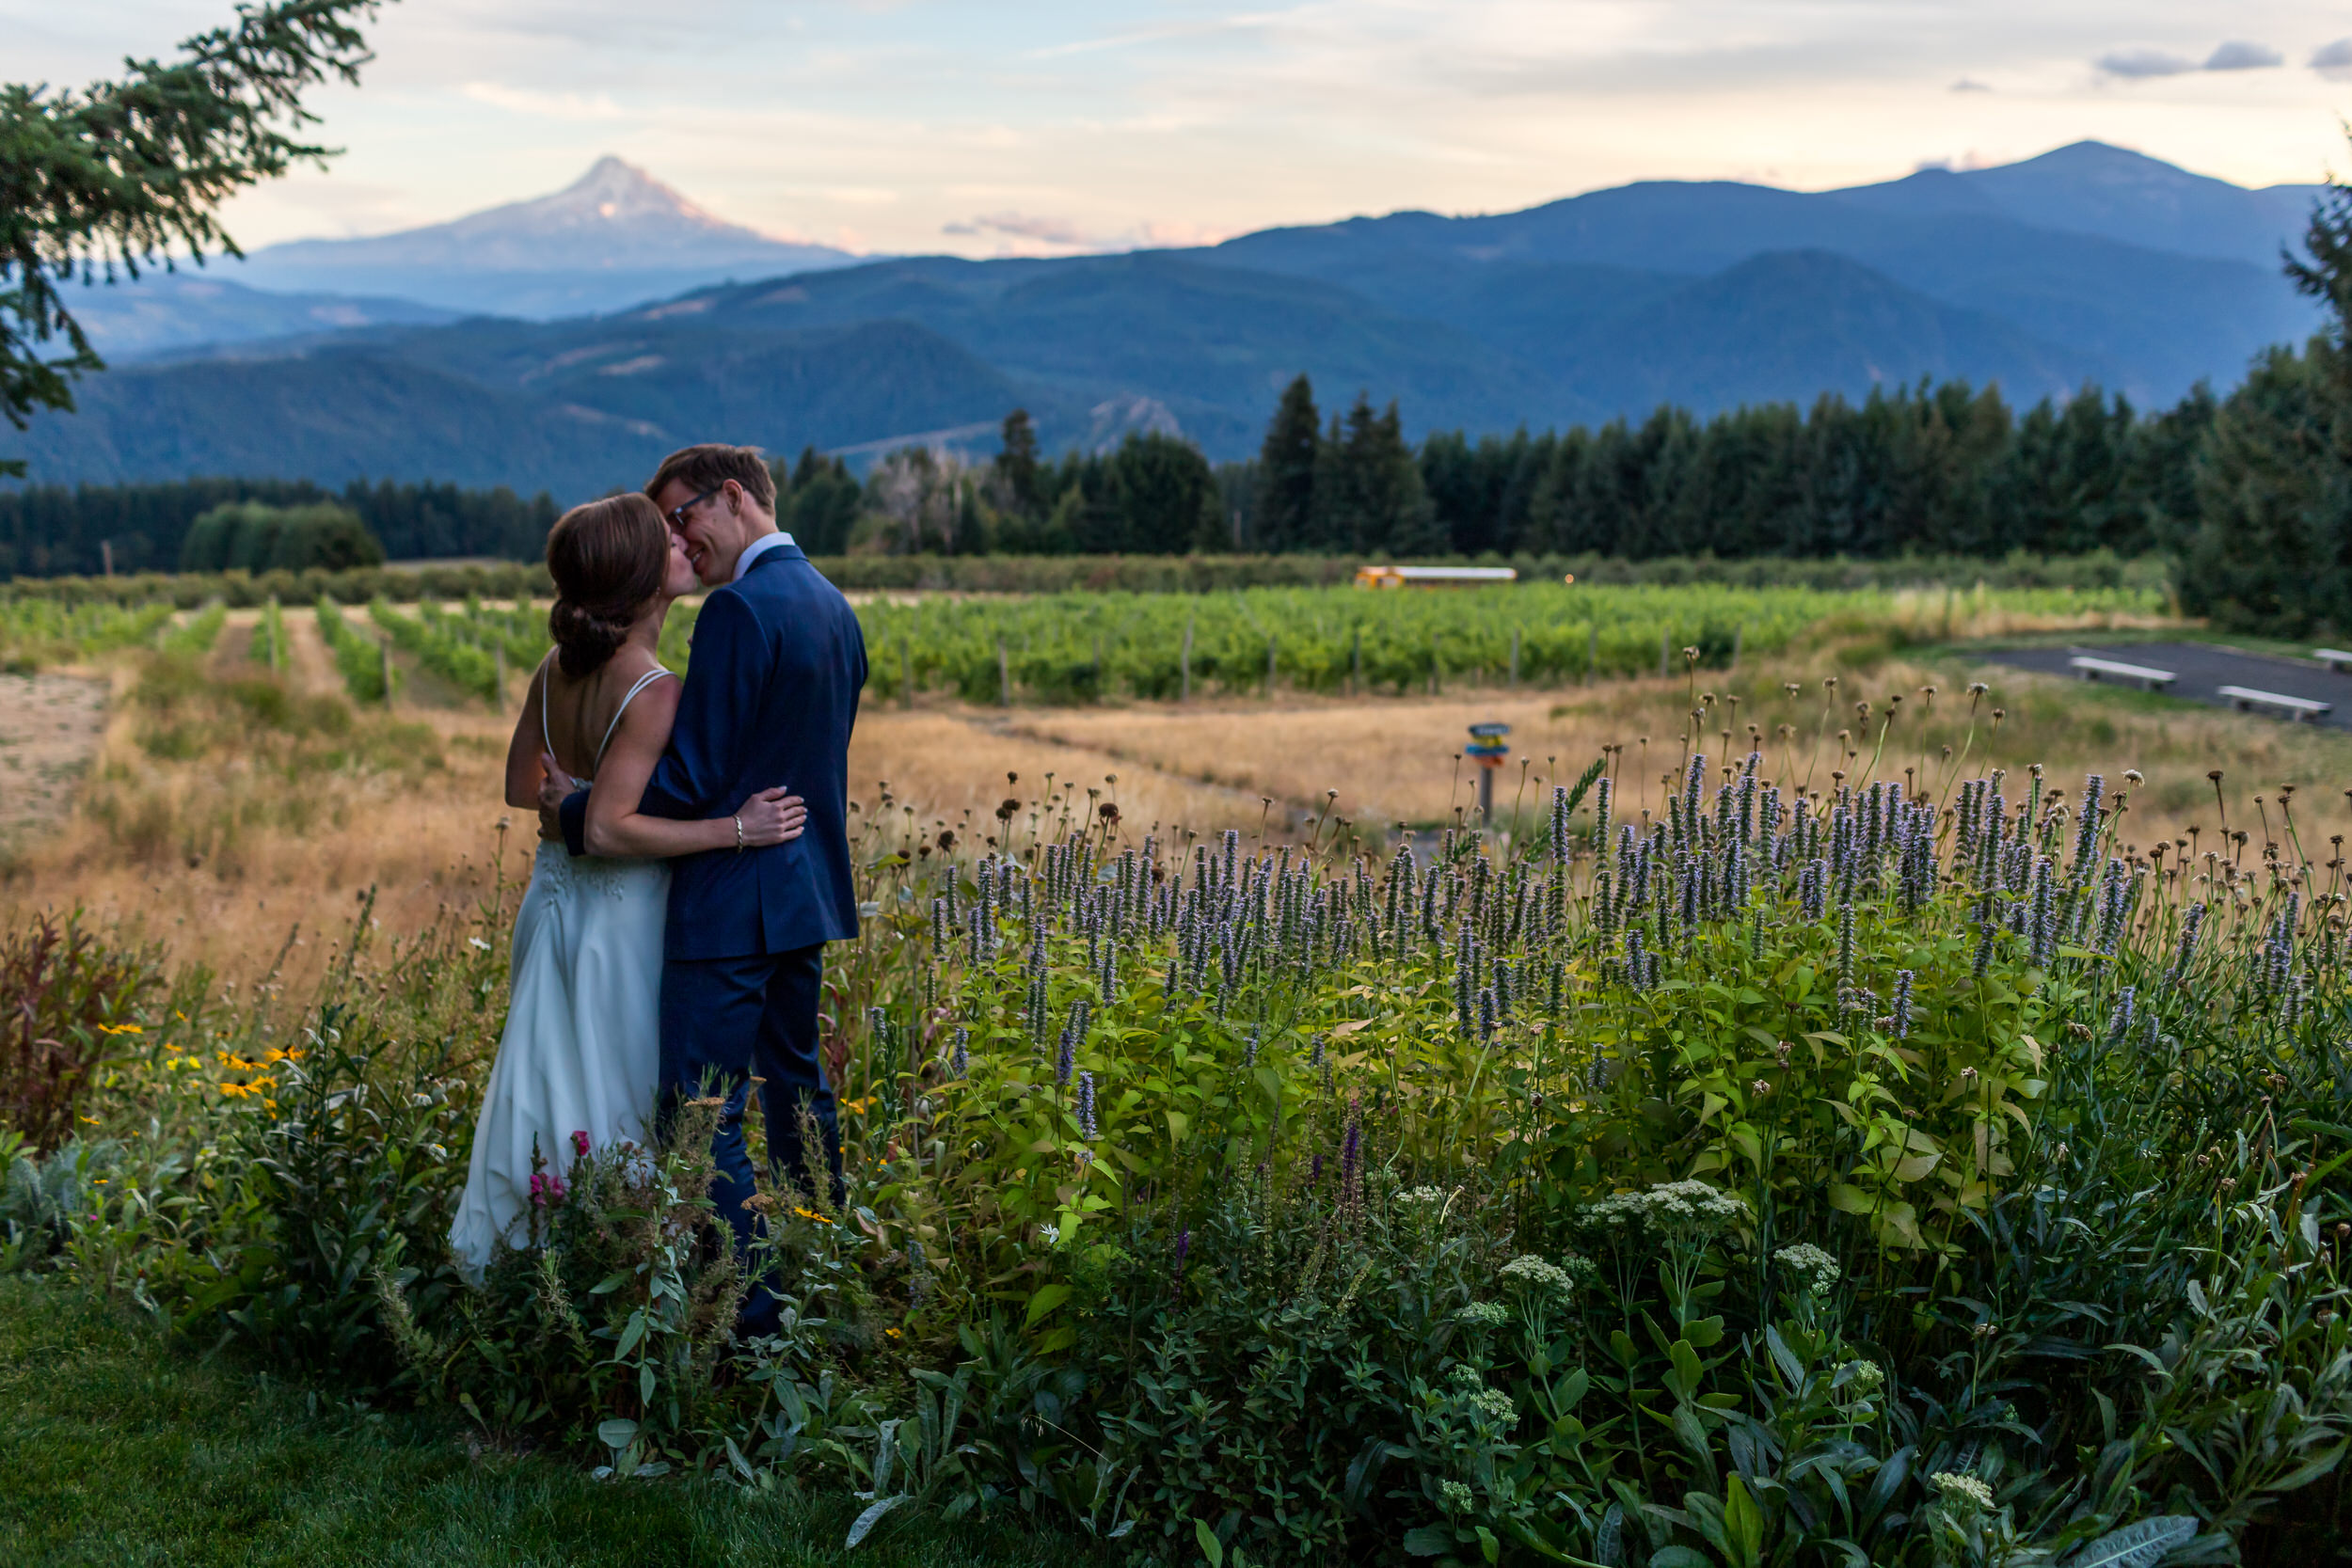 Gorge_Crest_Vineyards_Wedding_Stark_Photography_047